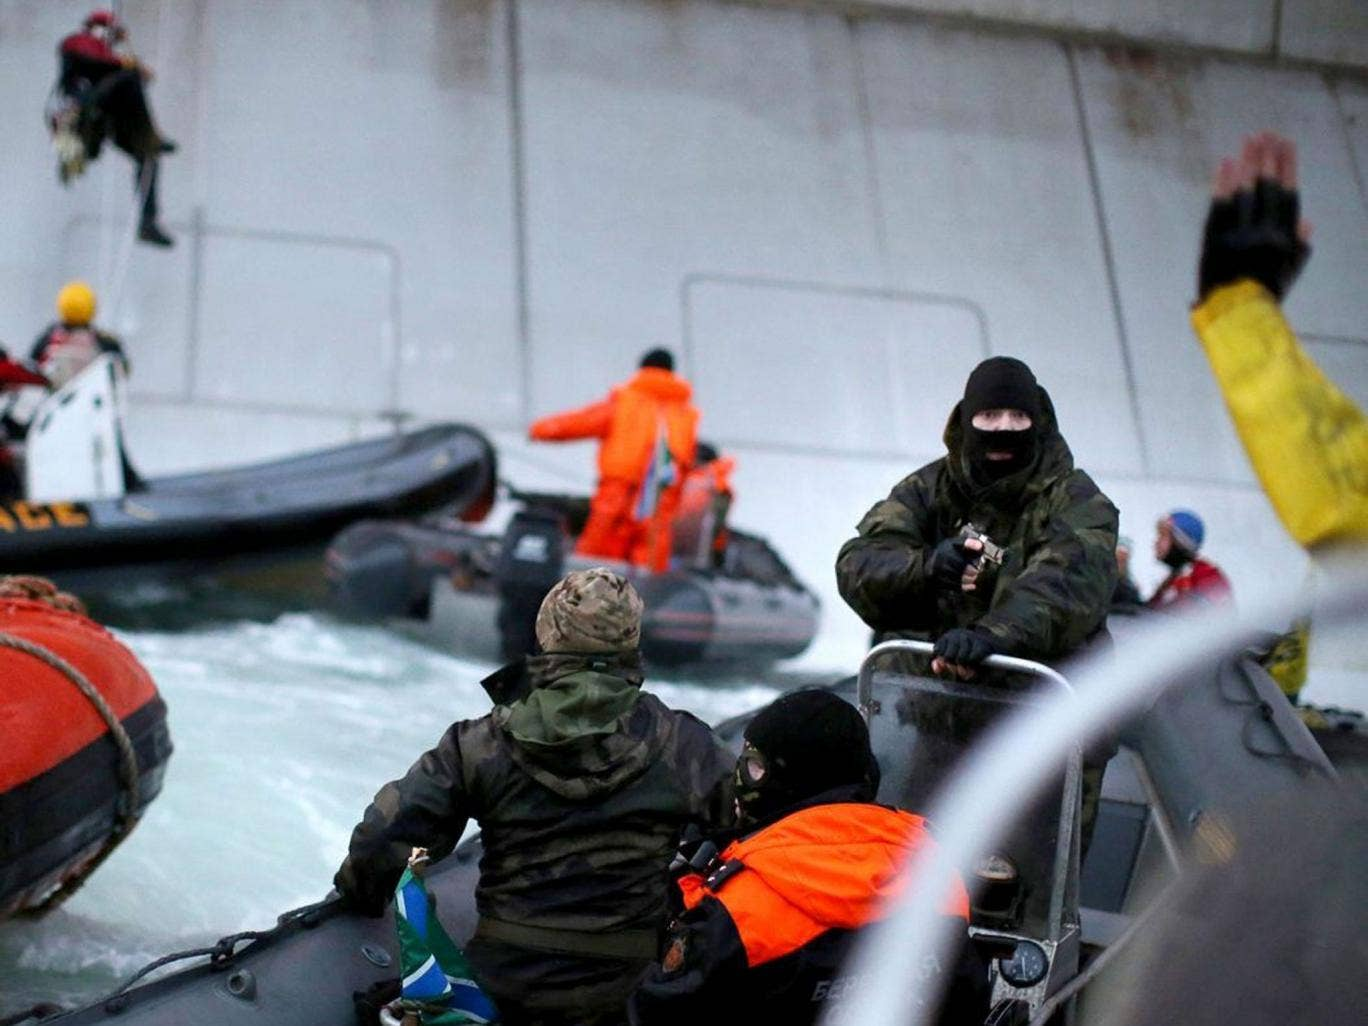 Greenpeace took this photo of a camouflaged officer from the Russian Coast Guard pointing a gun at an activist during an attempt to scale an Arctic oil rig on Wednesday